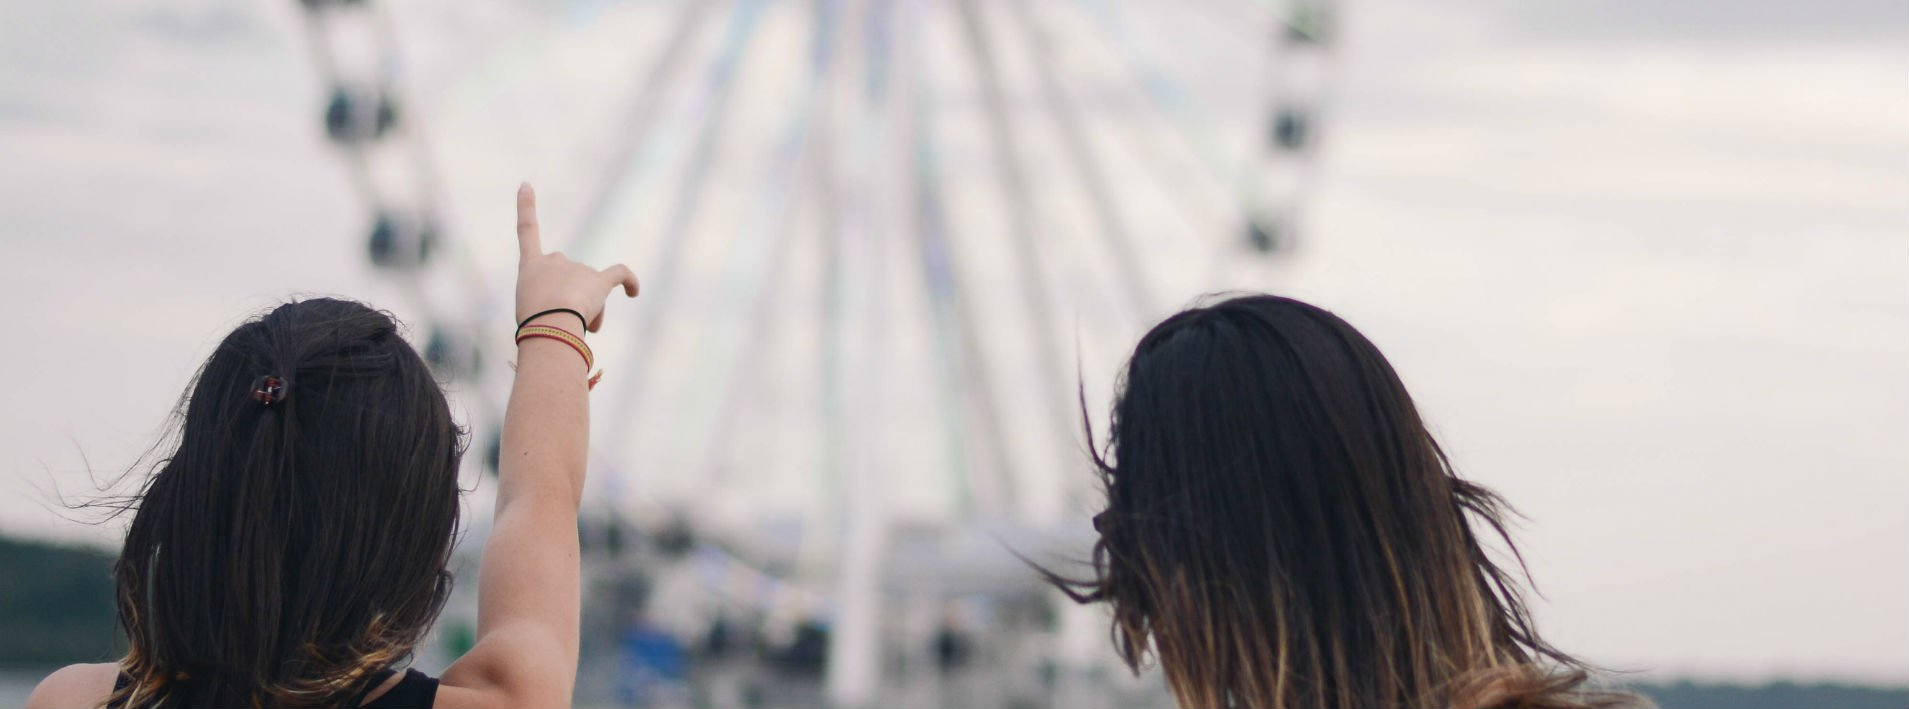 Girl pointing to a ferris wheel in the background- When to use This, That, These, and Those.